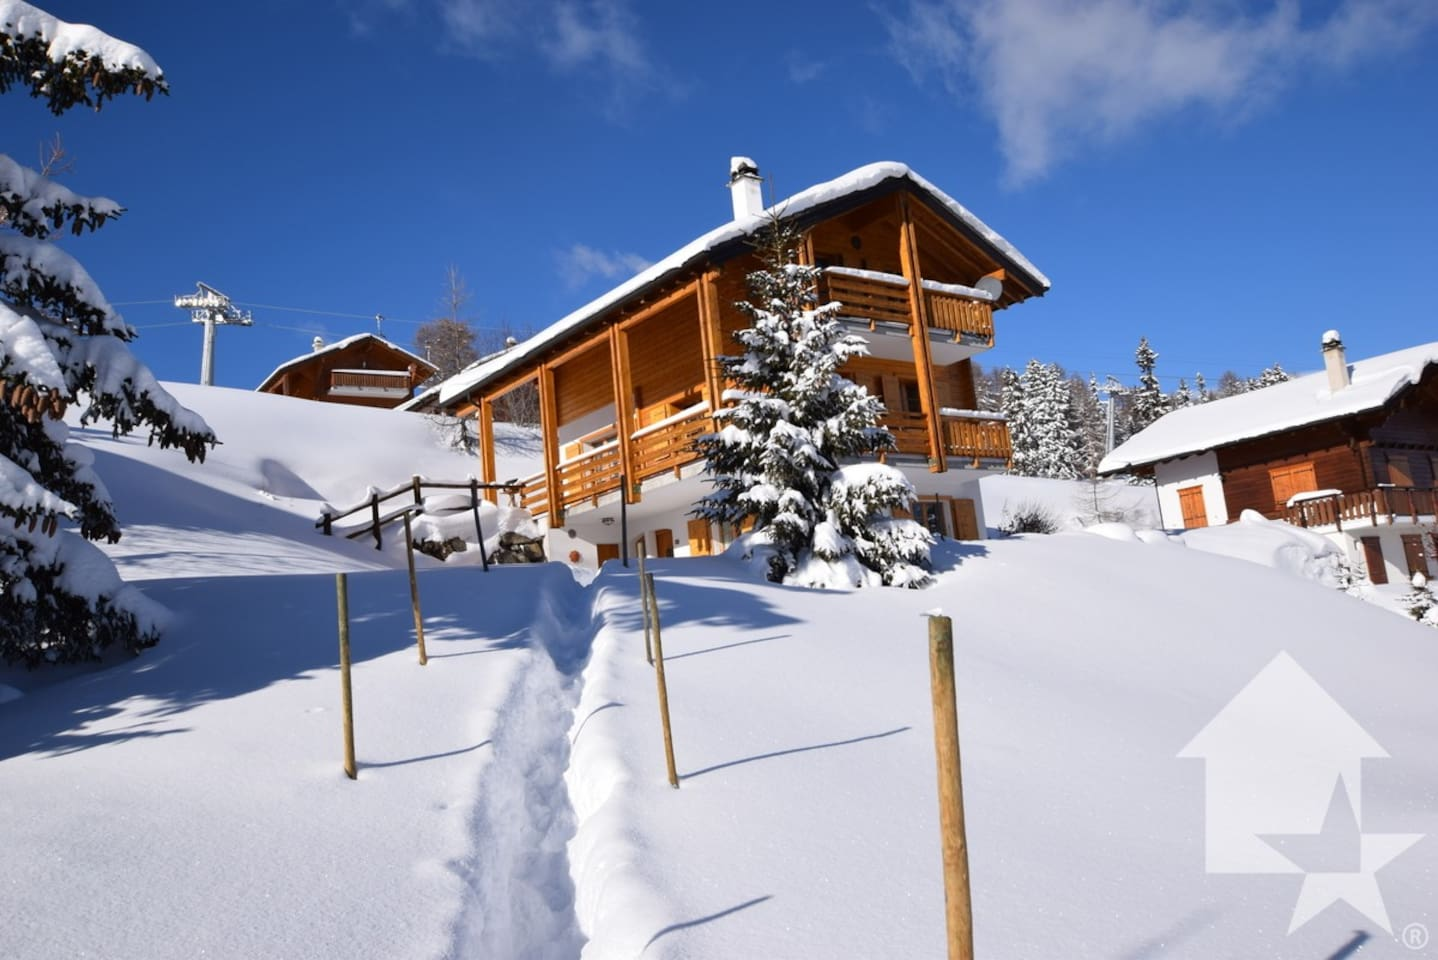 This is l'Estive, a charming chalet accomodating 7 people at an altitude of 2000m offering ski-in/out access to the 4 Vallées resort.